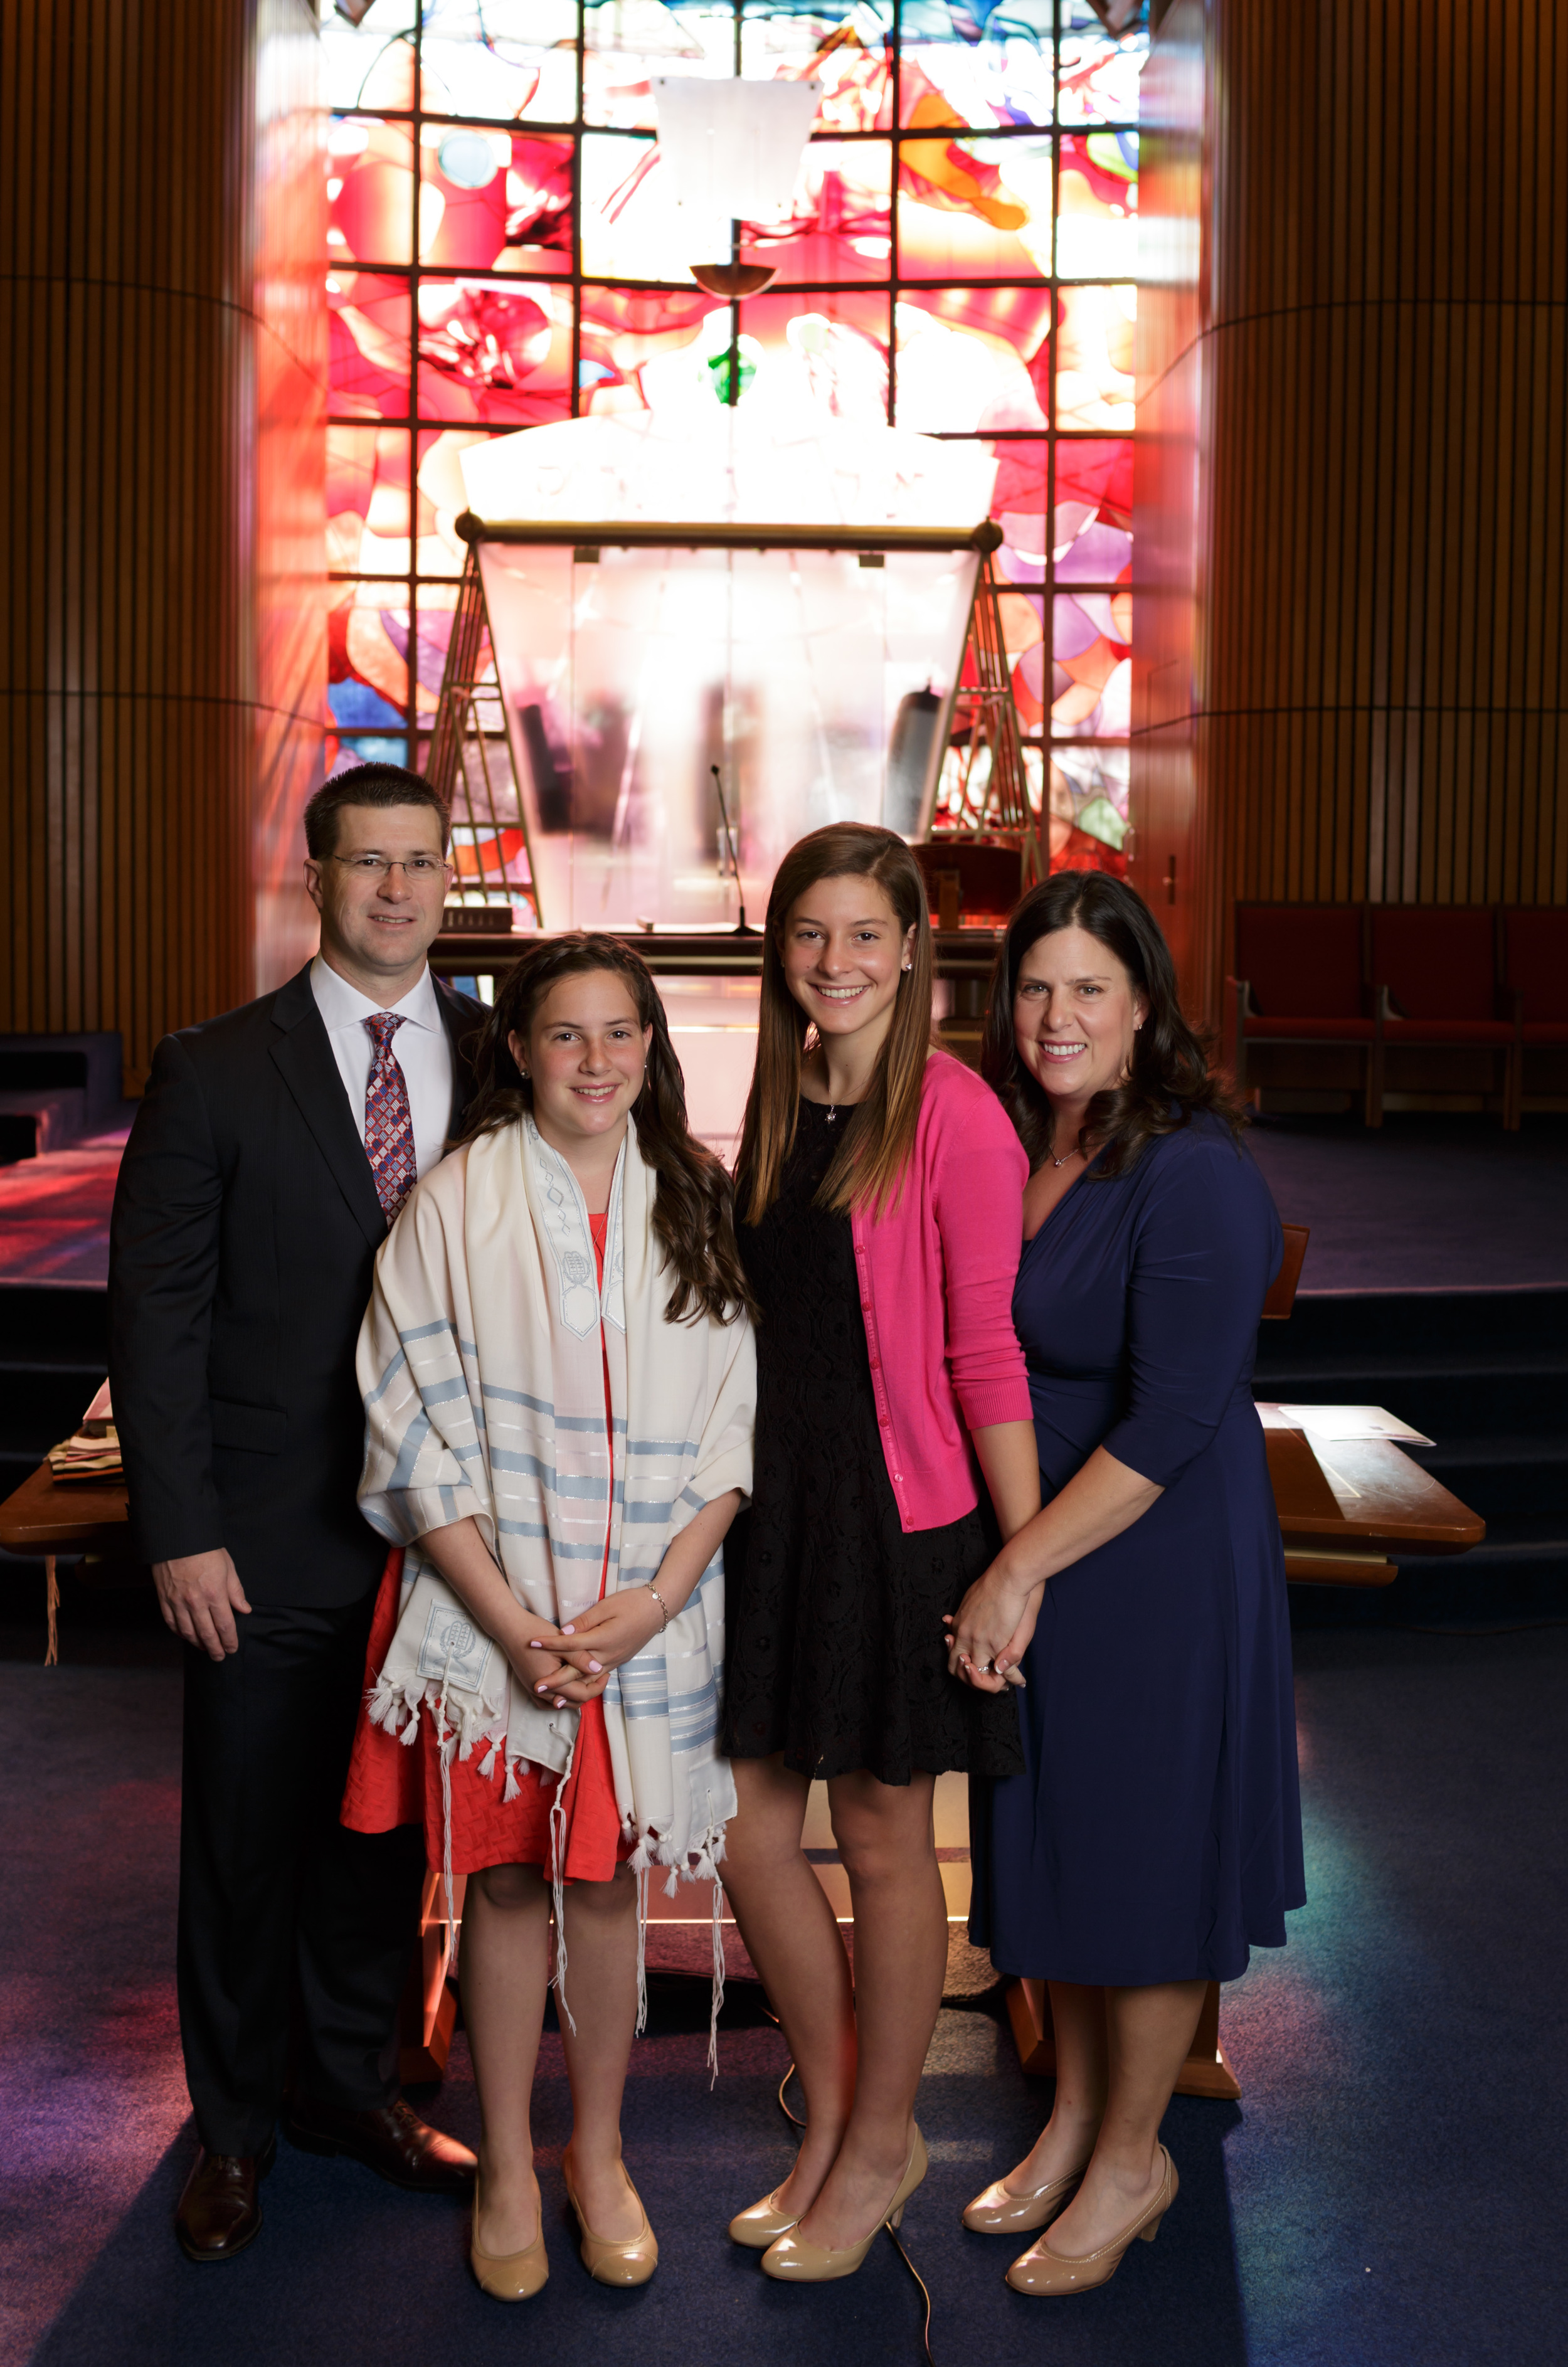 Syd_Michigan_California_Bat_Mitzvah_photographer_010